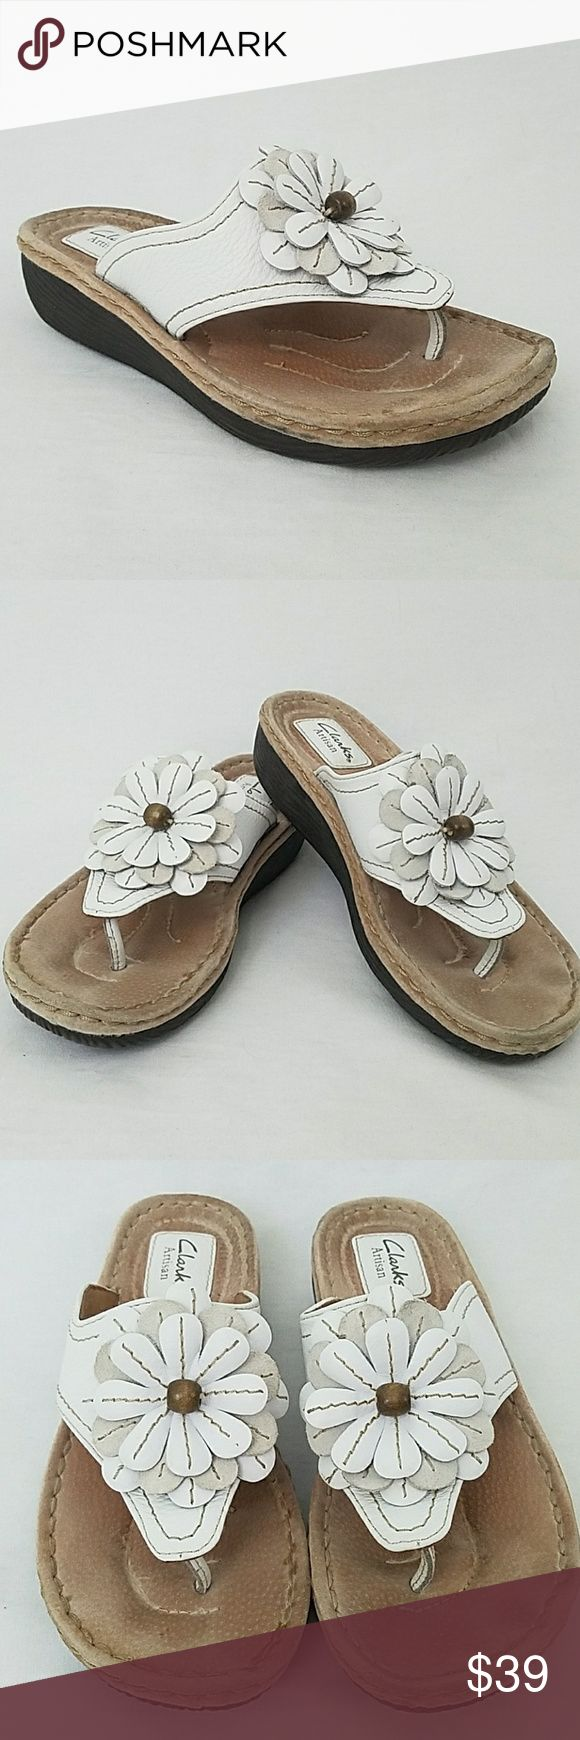 "Clark's Artisan Size 7-1/2 White Flower Sandals Brand: Clark's Artisan Collection Condition: Excellent Preloved Color: White and Cream Style: Slip on sandal  Material: Leather Size: 7.5 M Heel Height: 1-1/2"" Insole: 9-1/2"" Special Accents: Adorable white flower decoration Issues: None Made: China Smoke Free Environment: Yes Clark's Shoes Sandals"